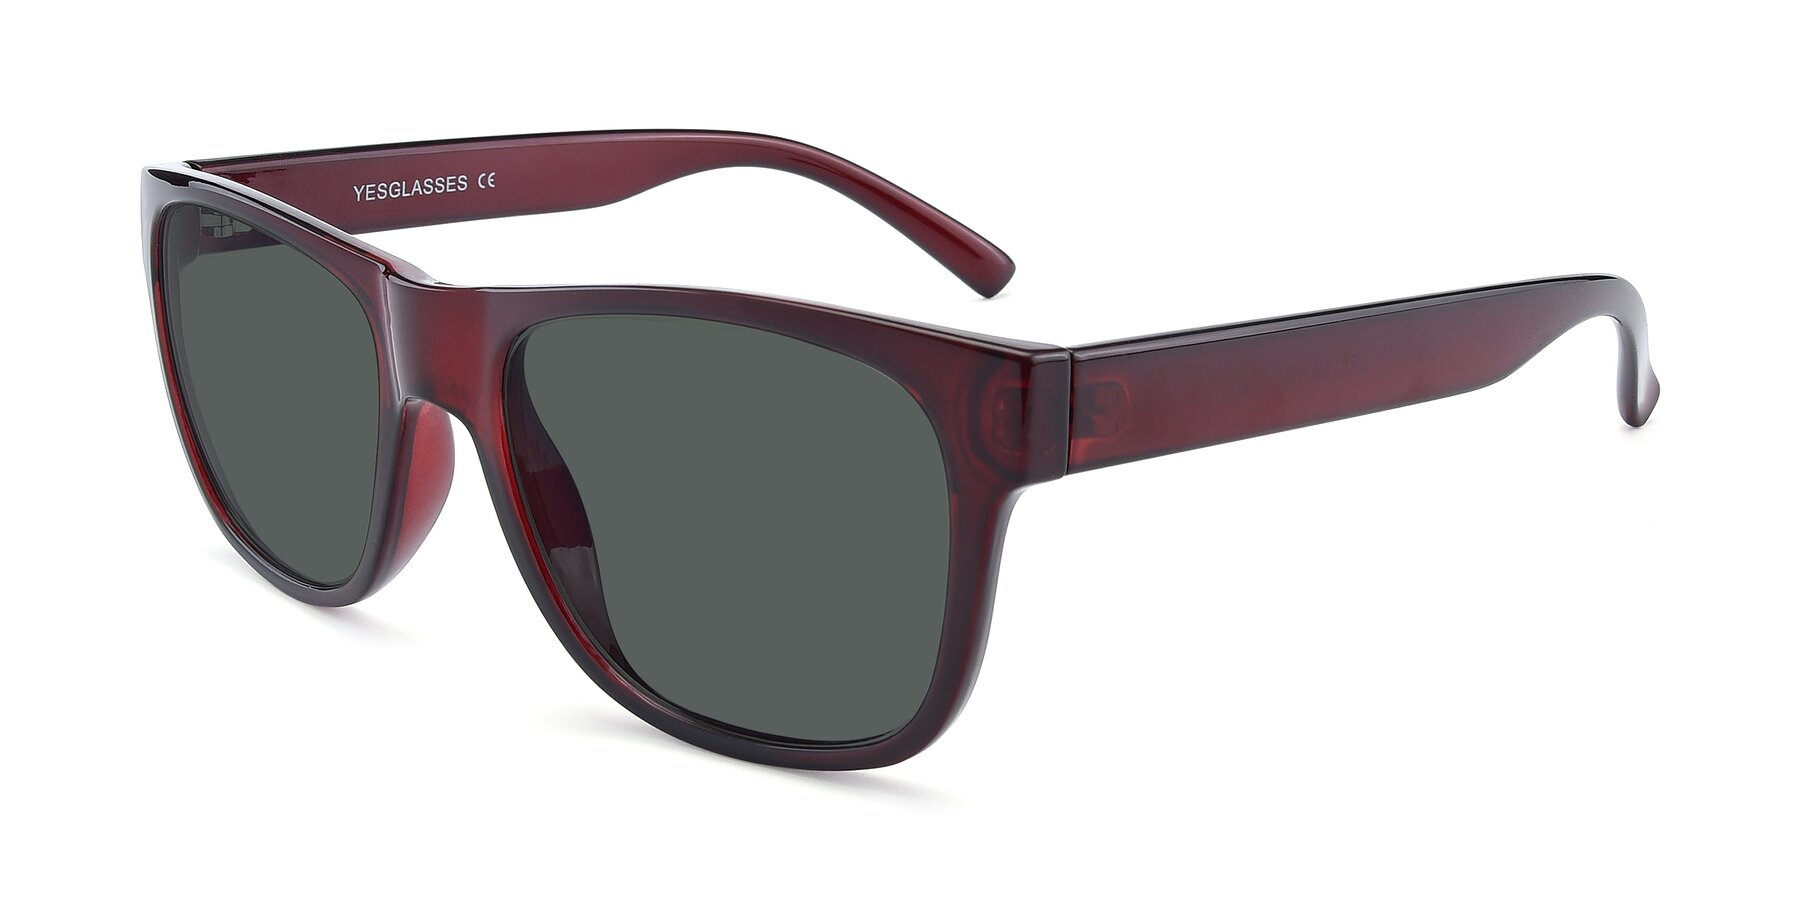 Angle of SSR213 in Wine with Gray Polarized Lenses